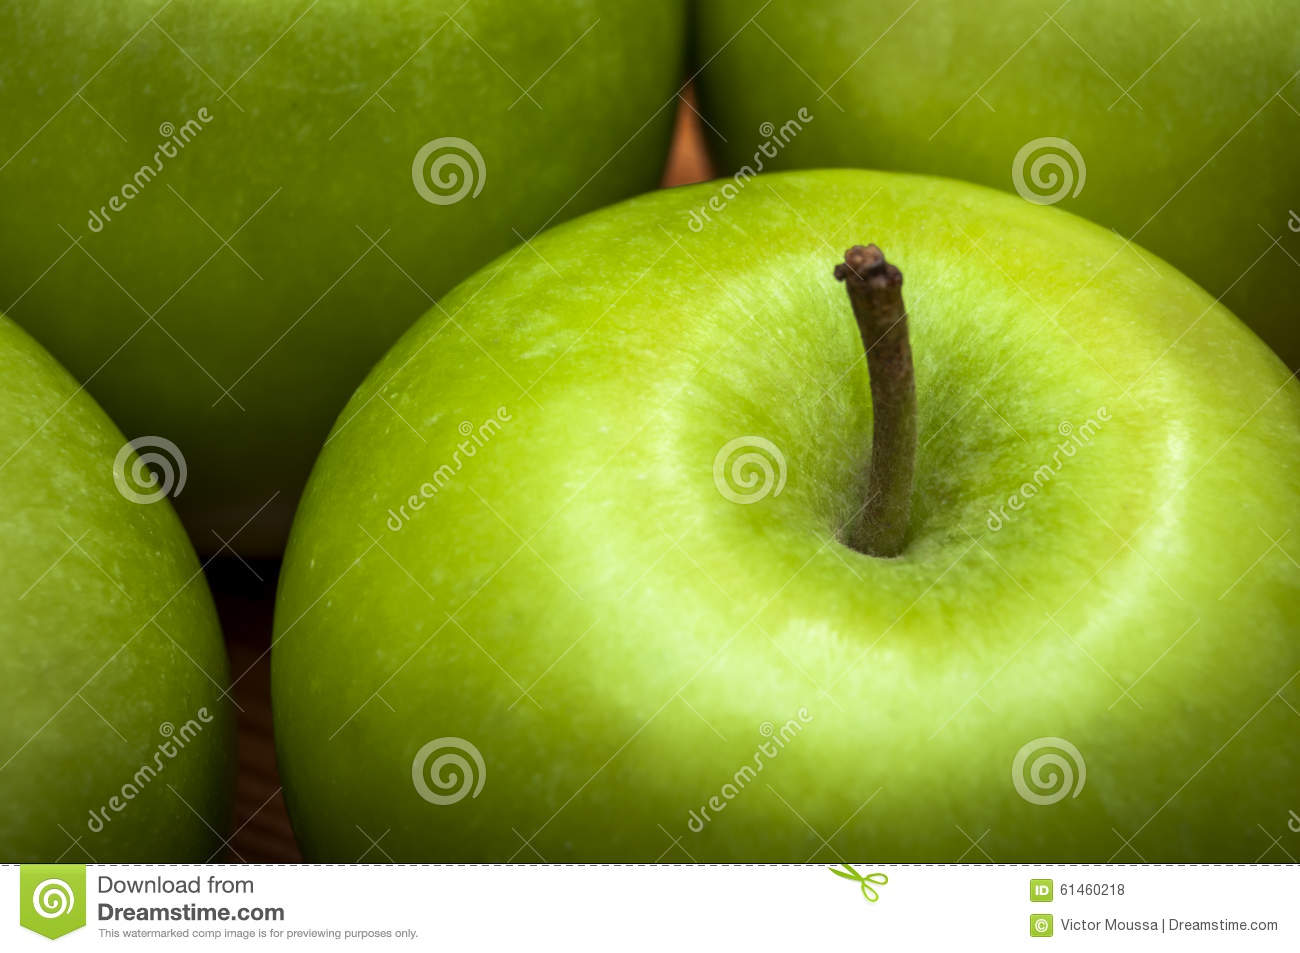 delicious green apple illustration - photo #26